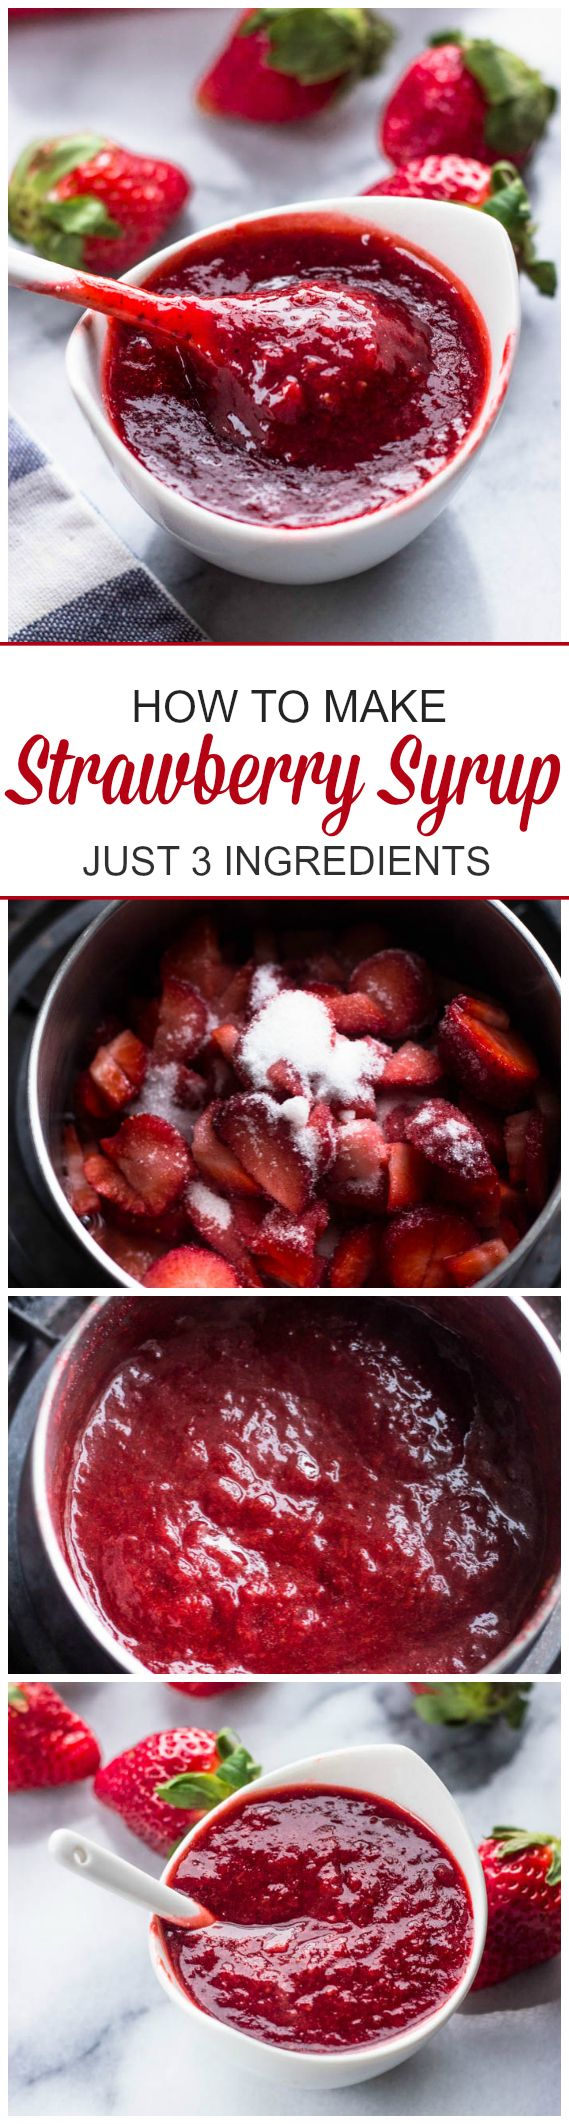 homemade-deer-lick-strawberry-syrup-pics-paige-hemmis